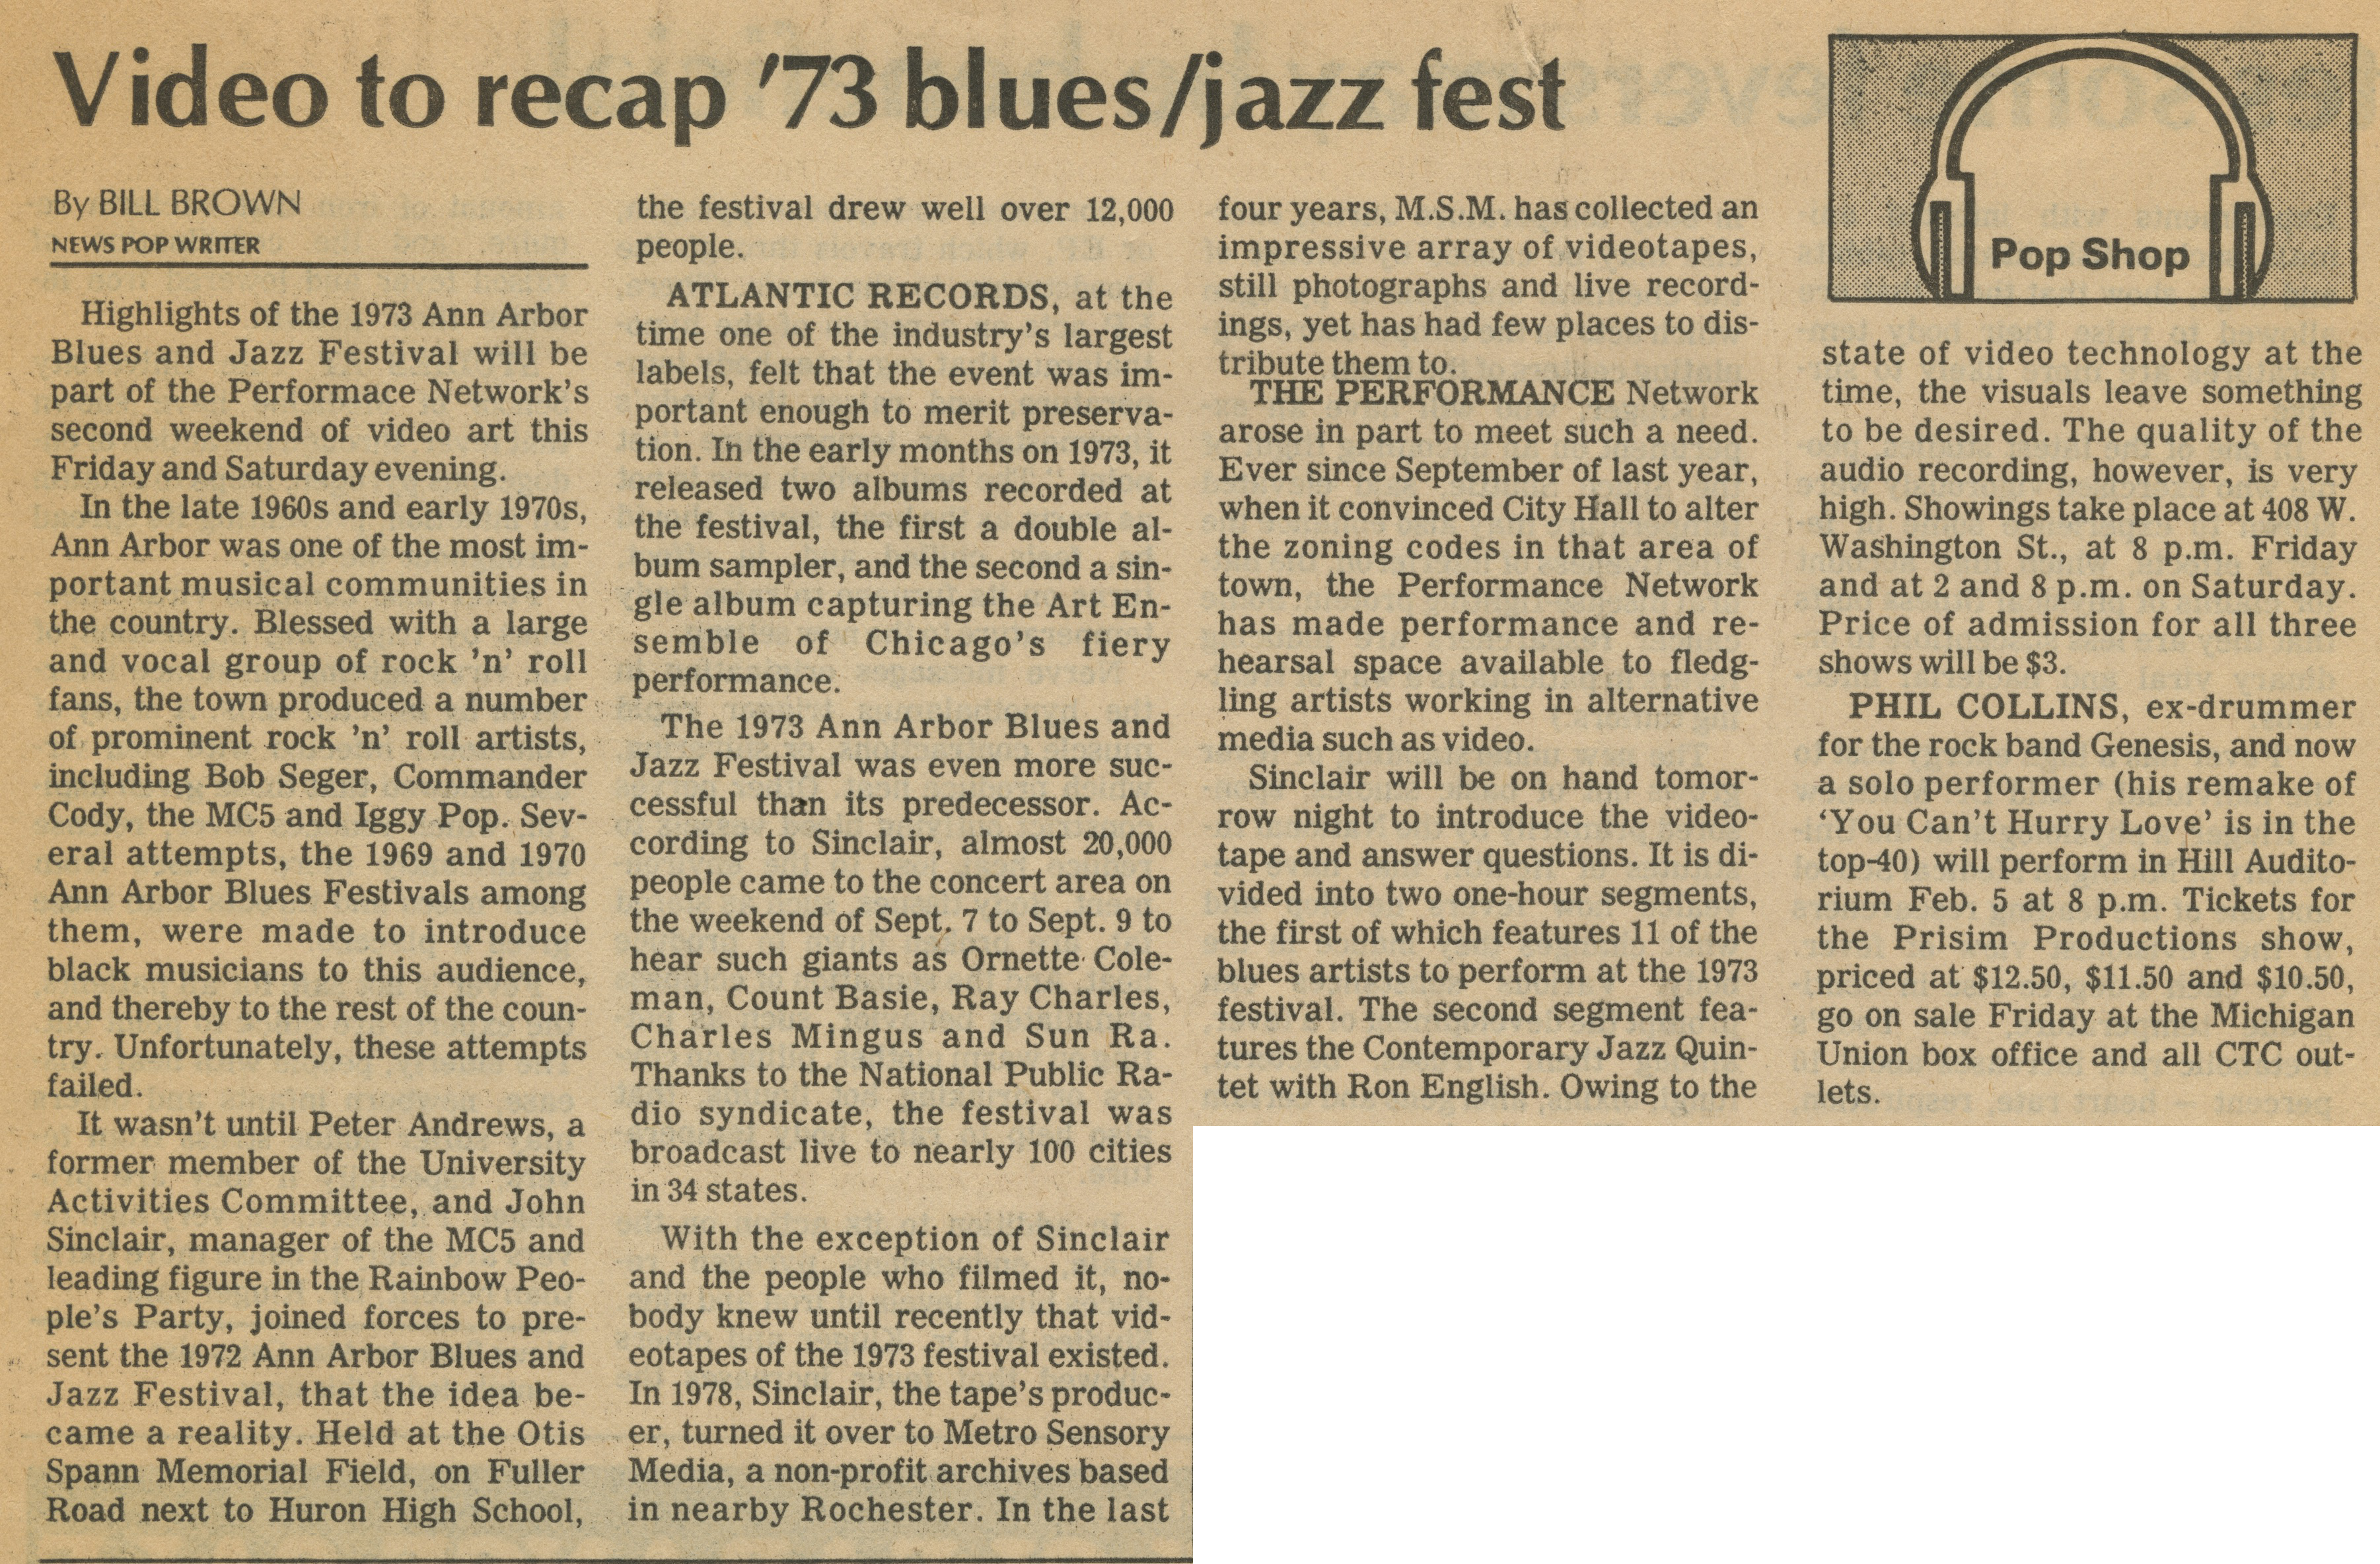 Video to recap '73 blues/jazz fest image